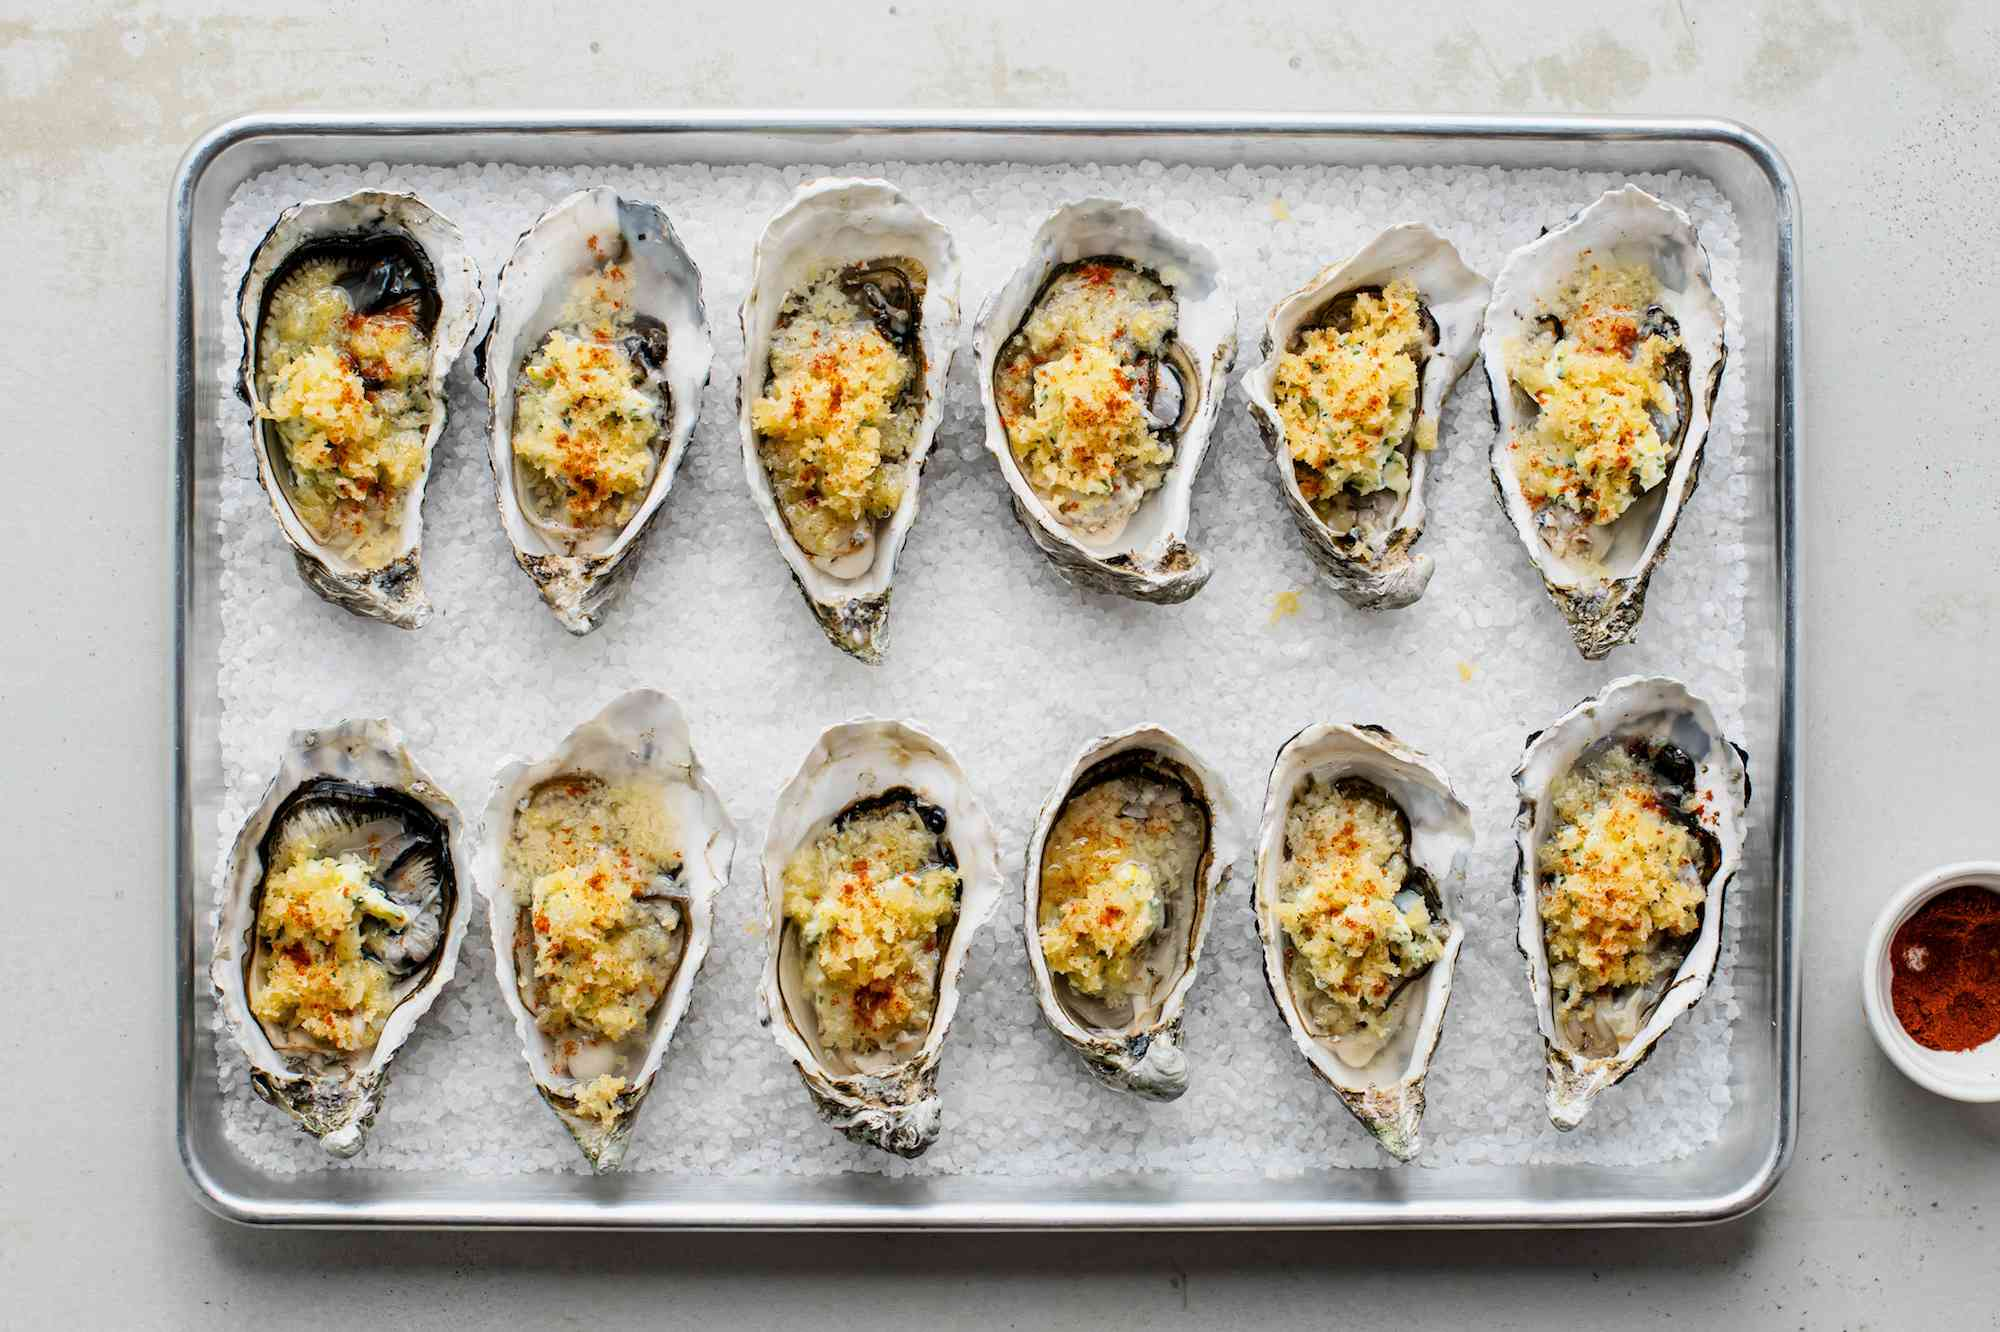 Oysters sprinkled with paprika